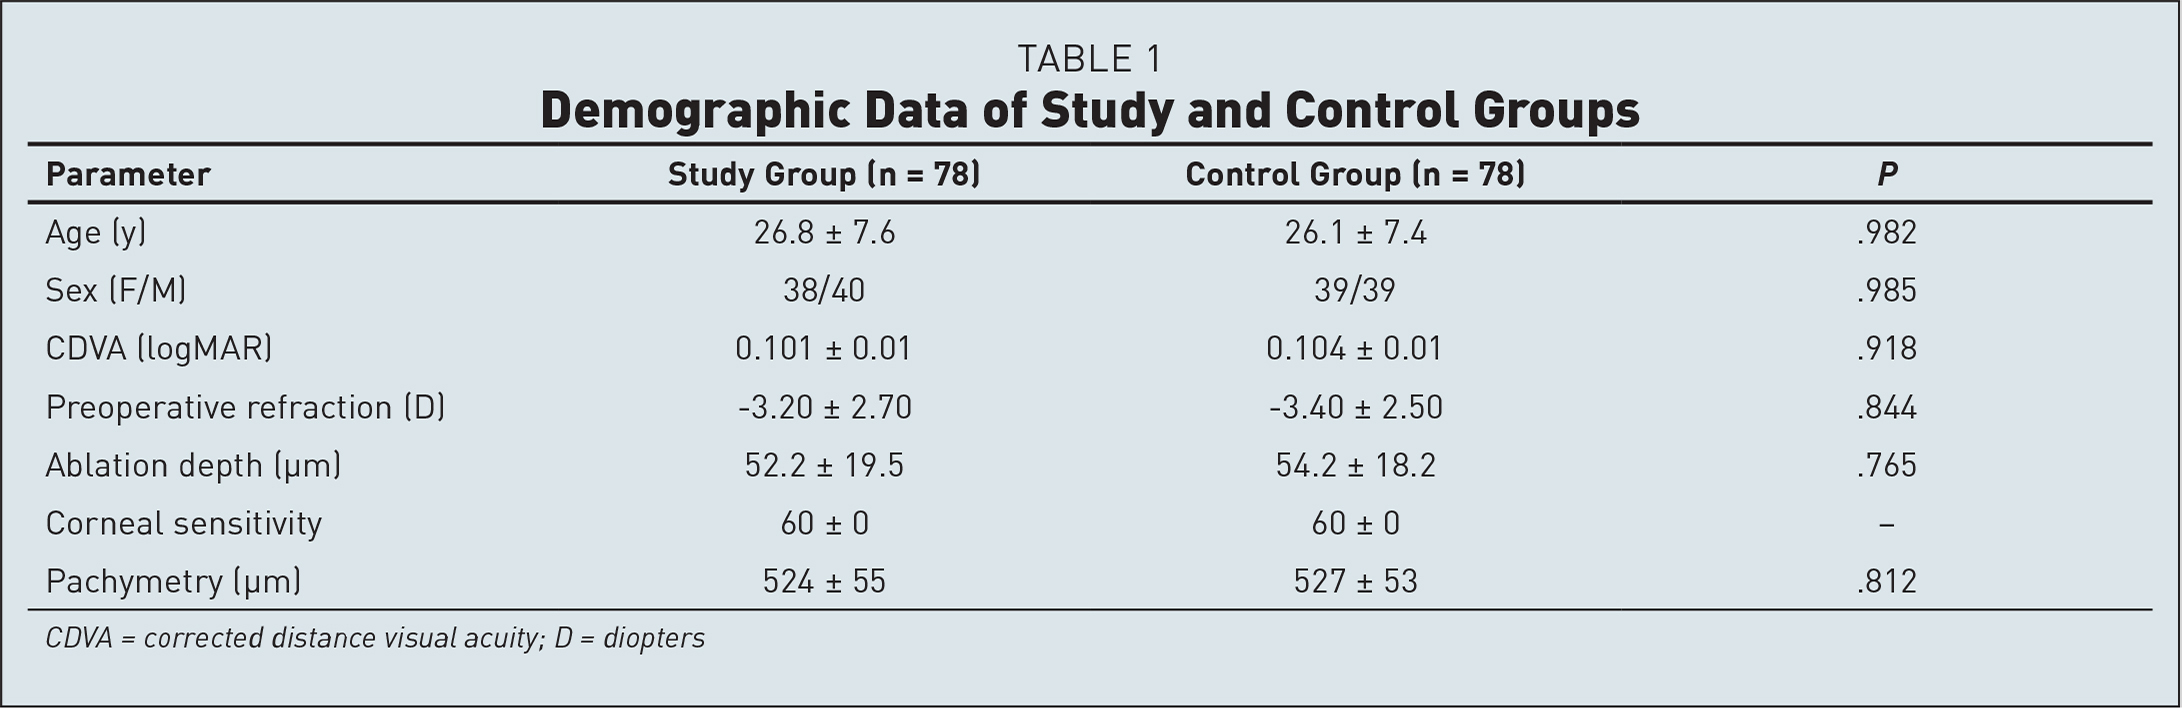 Demographic Data of Study and Control Groups